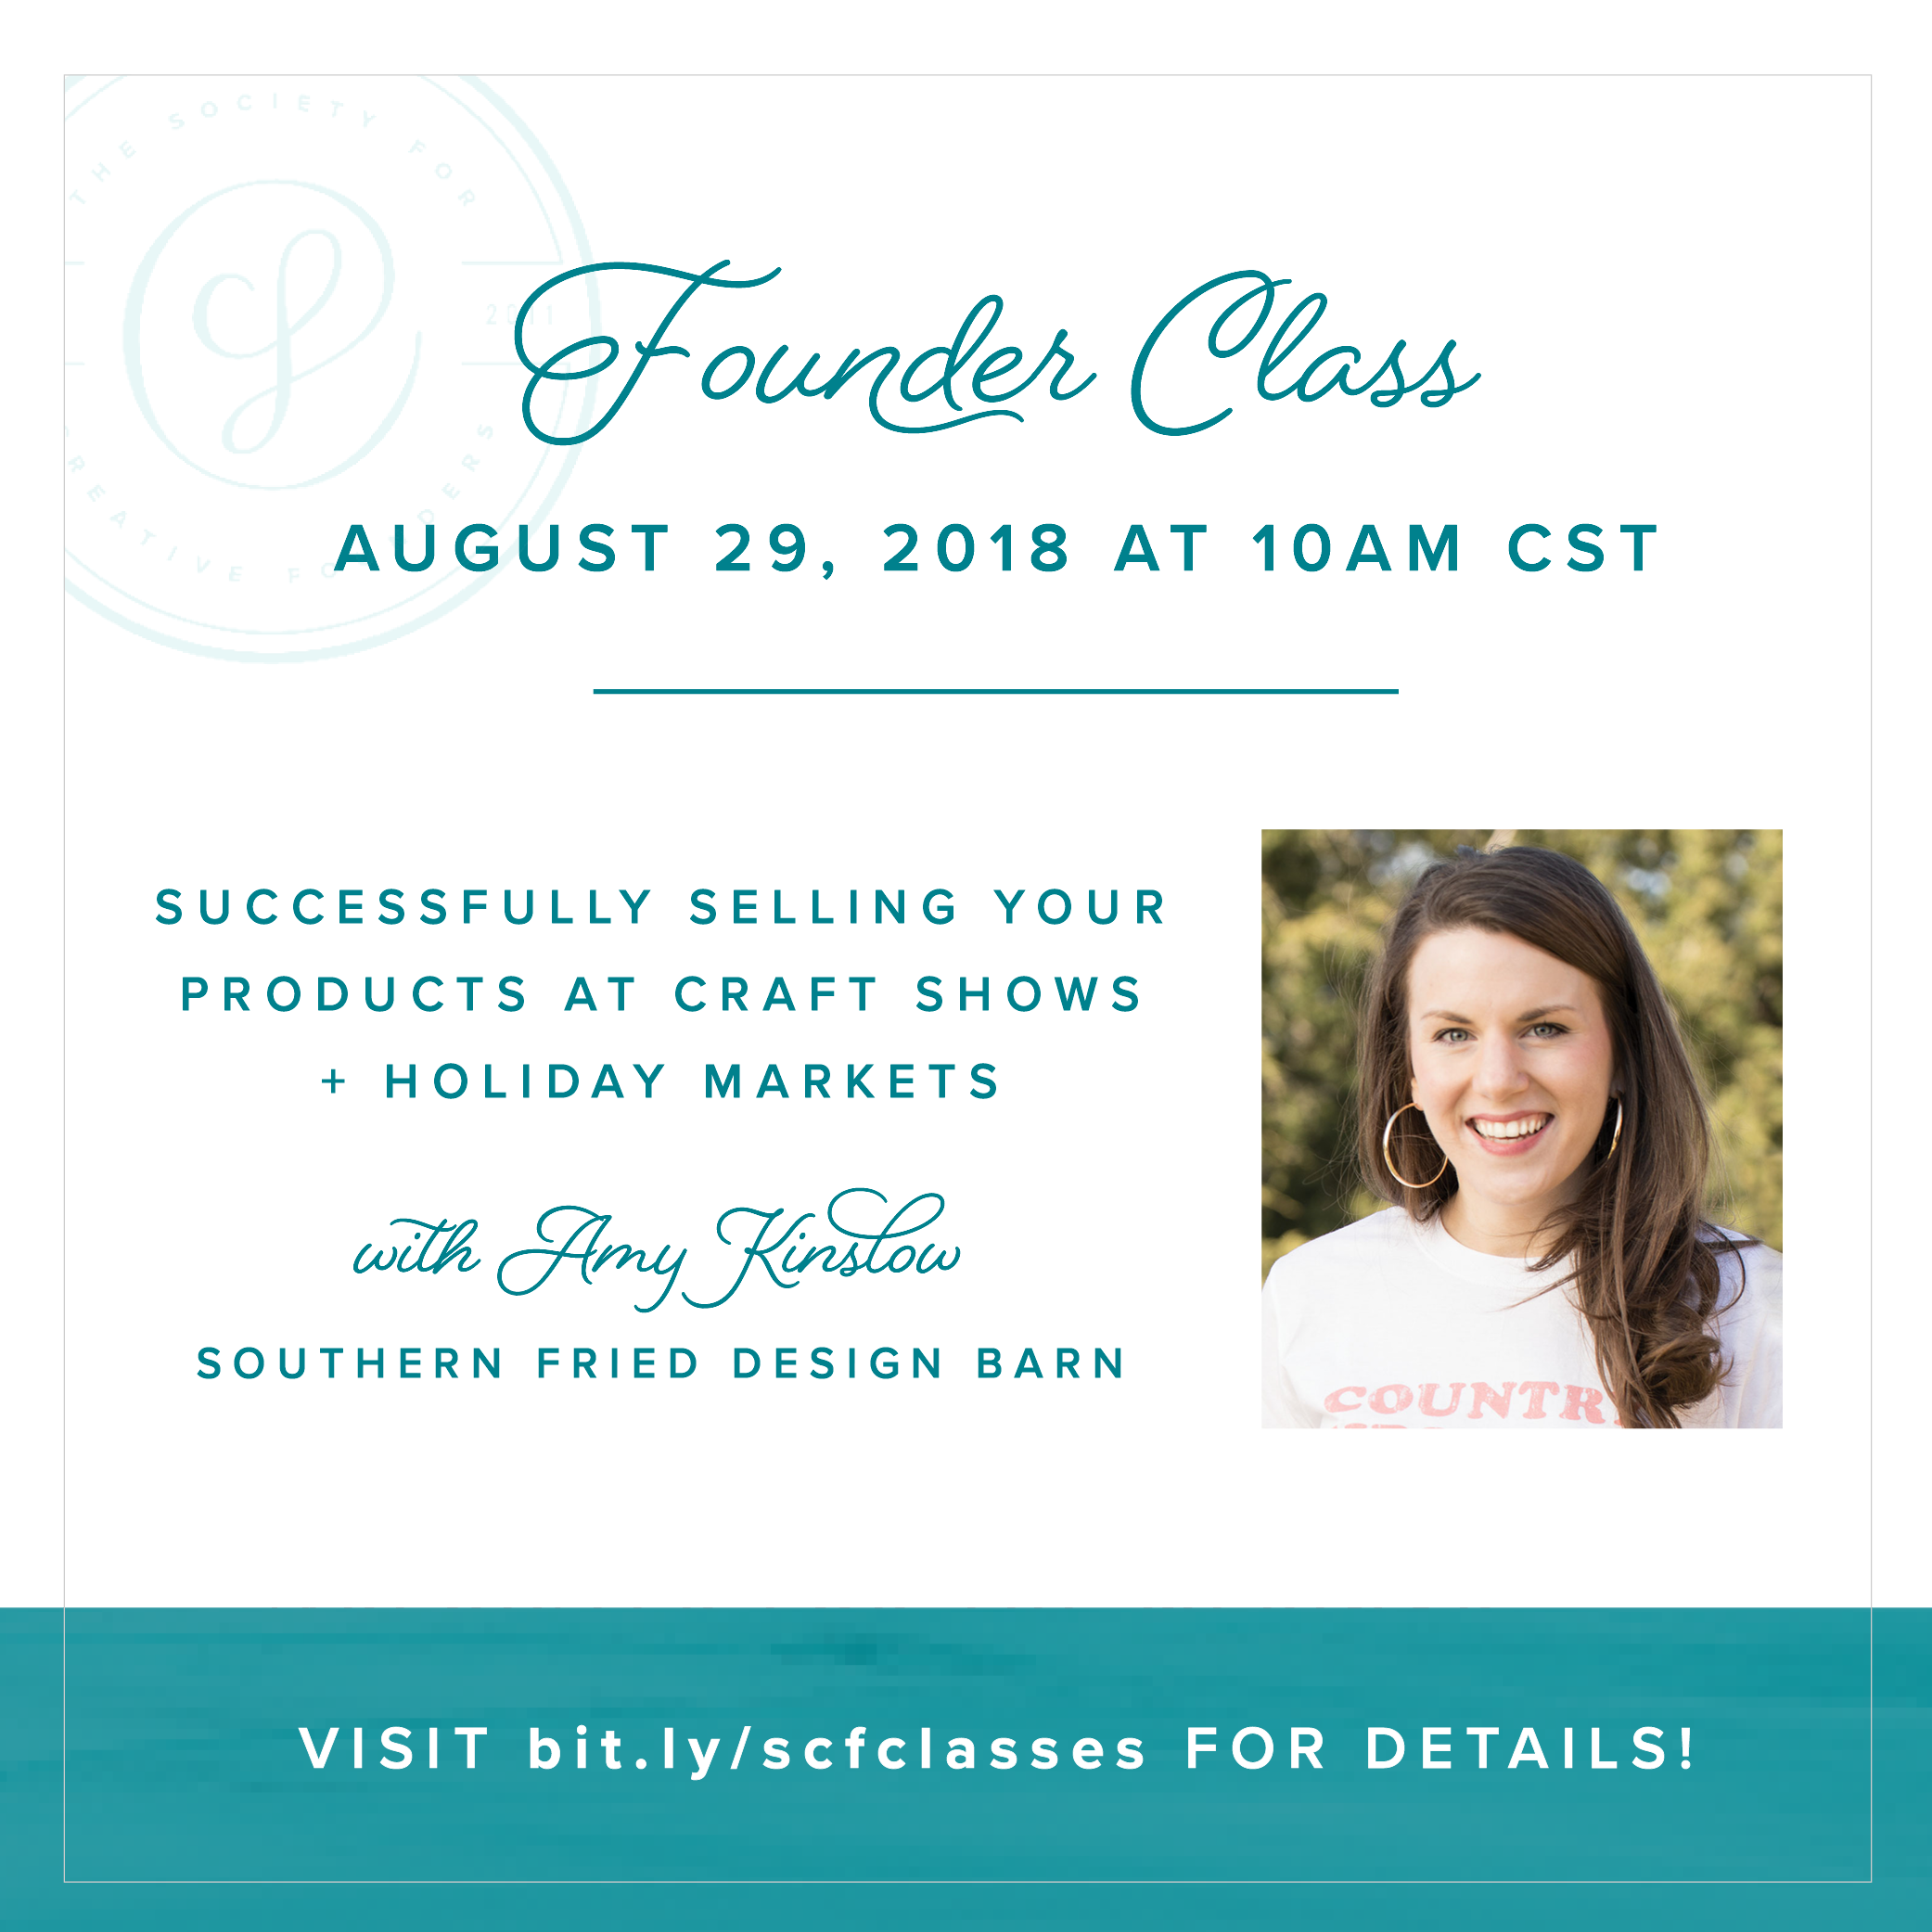 Successfully Selling at Holiday Markets and Craft Shows - Creative Founders Class on August 29th with Amy Kinslow